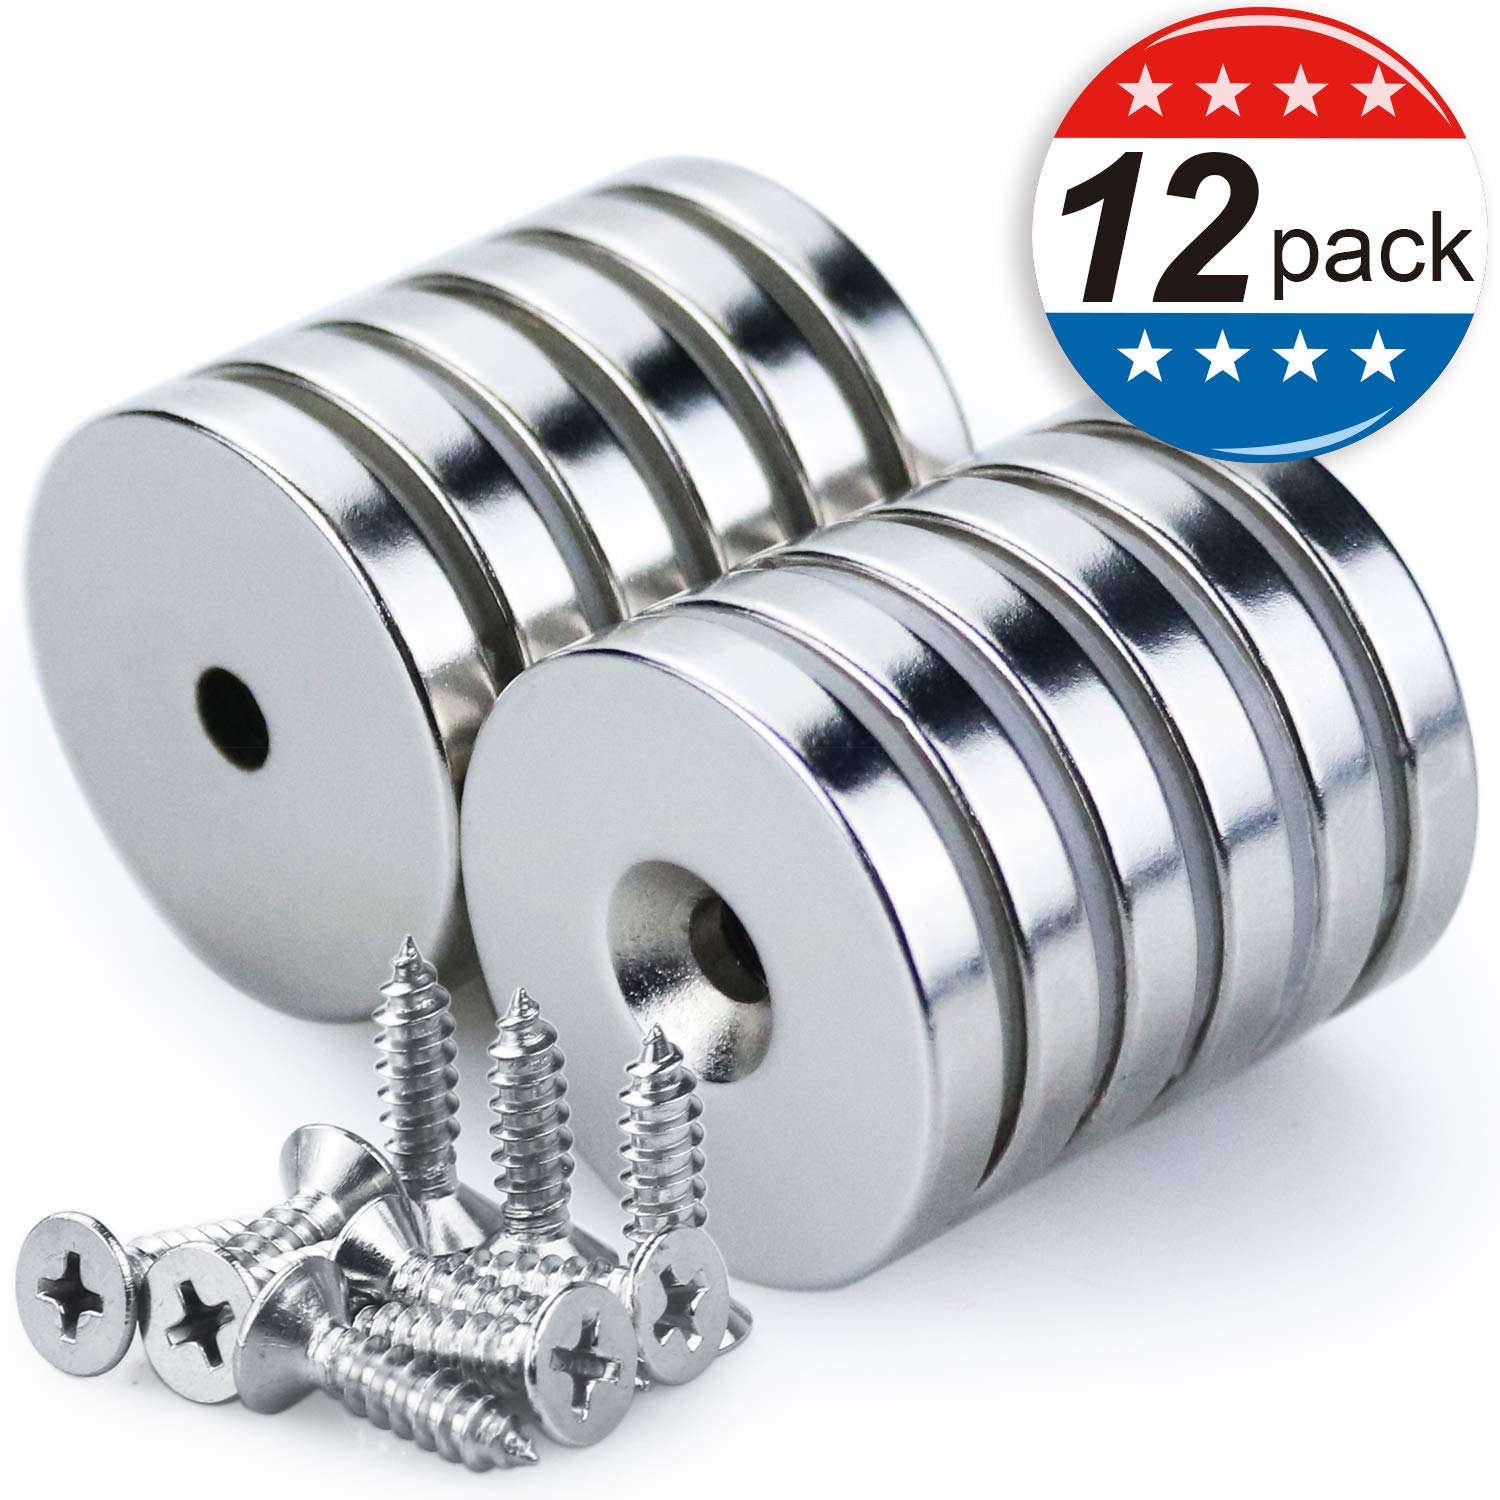 12Pack 1.26''D x 0.2''H Neodymium Disc Countersunk Hole Magnets. Strong, Permanent, Rare Earth Magnets,with 12 Screws